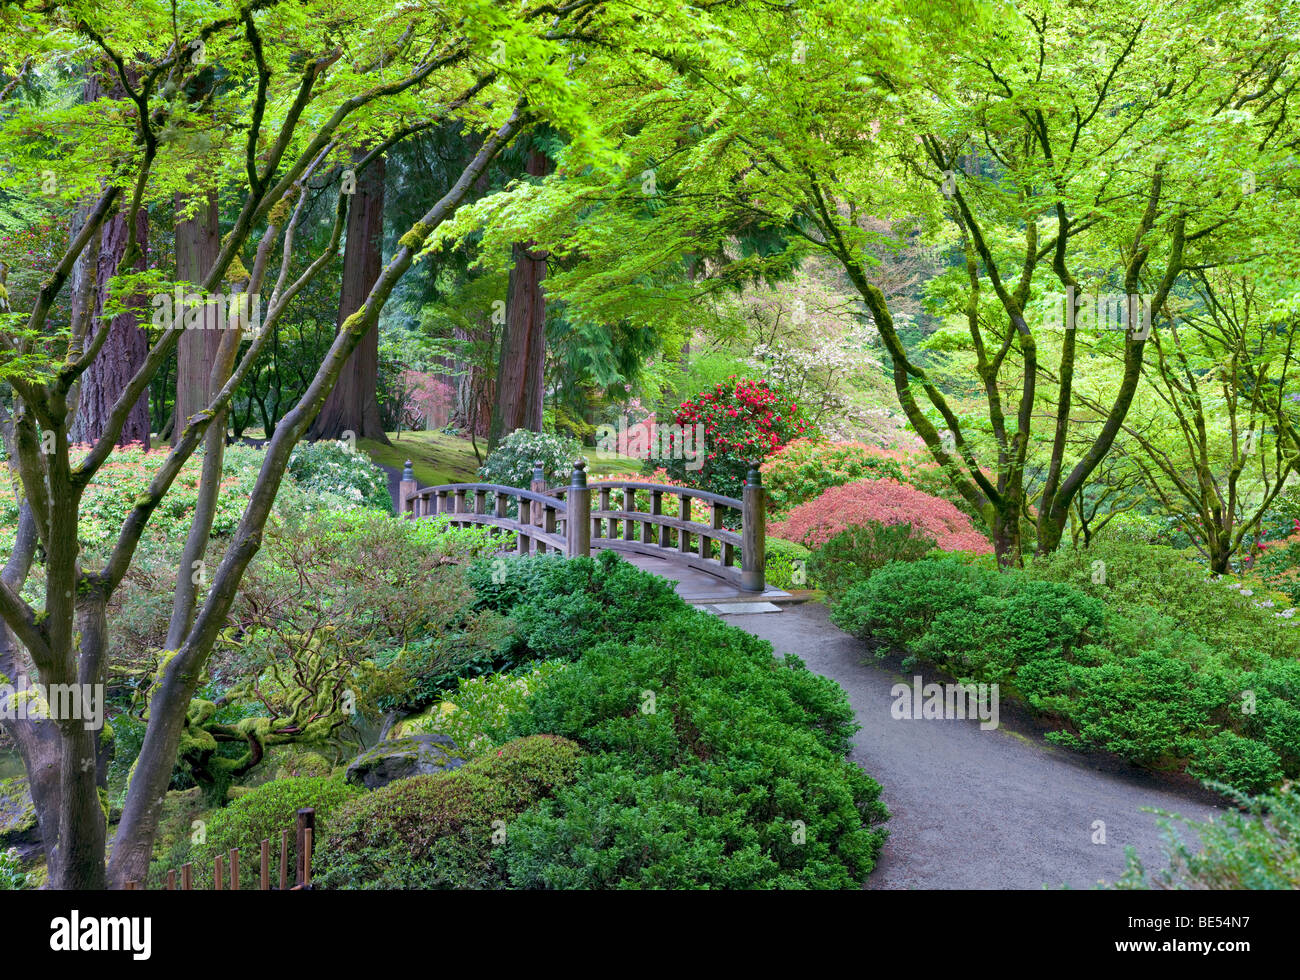 Bridge and early spring growth. Portland Japanese Gardens, Oregon. - Stock Image